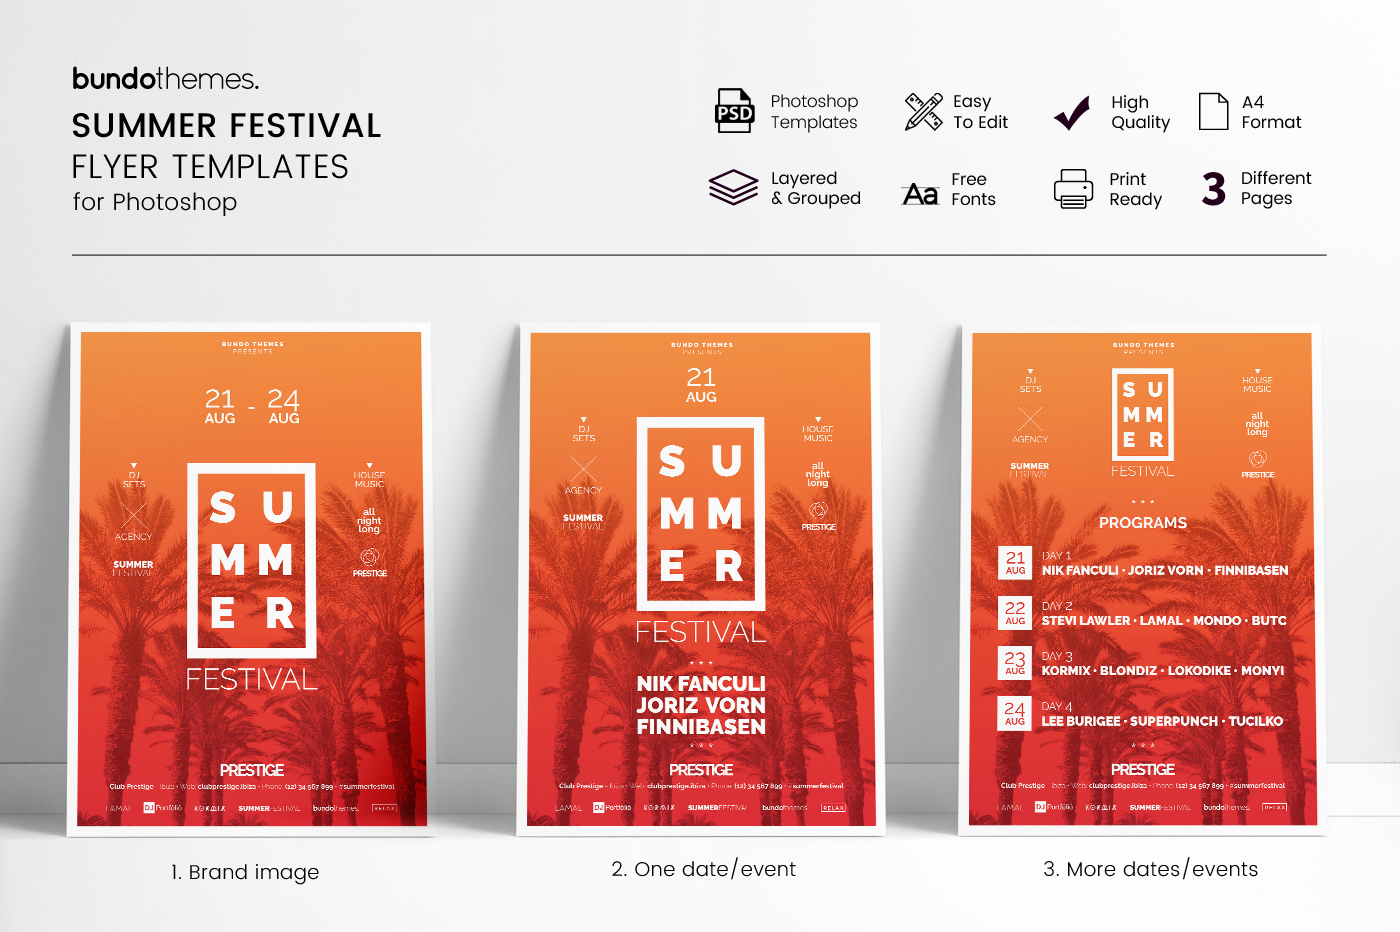 Summer Festival Flyer Templates example image 1